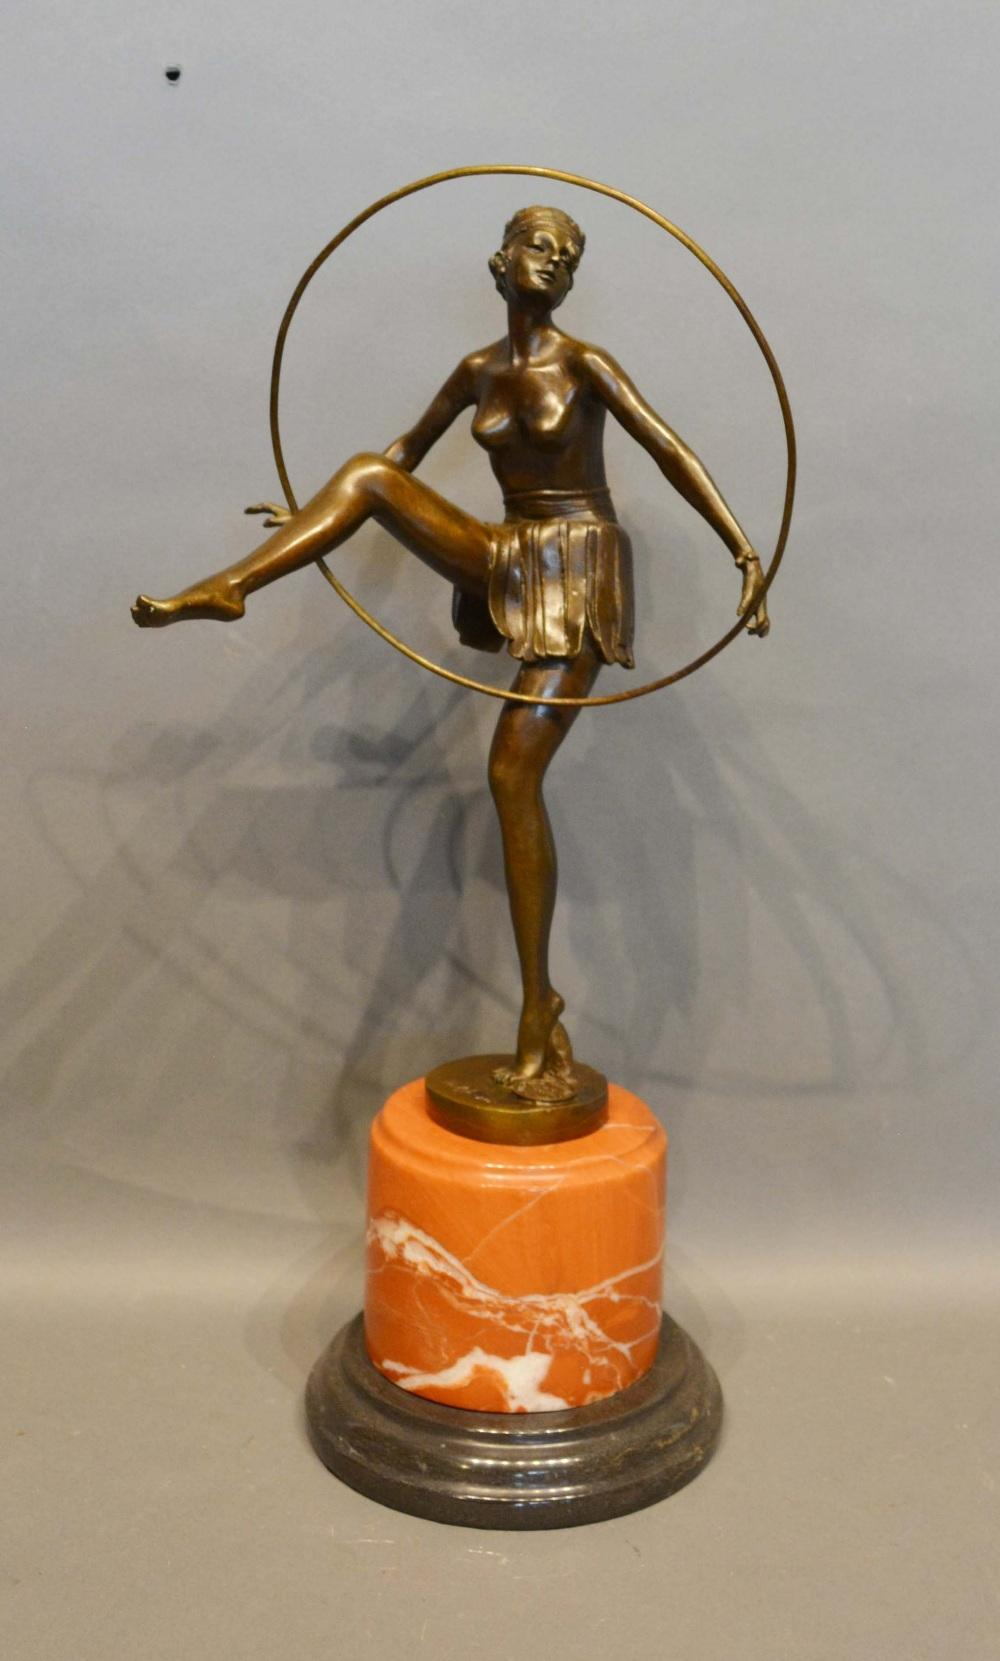 Lot 301 - An Art Deco Style Patinated Bronze Model in the Form of a Dancing Girl with Hoop upon variegated